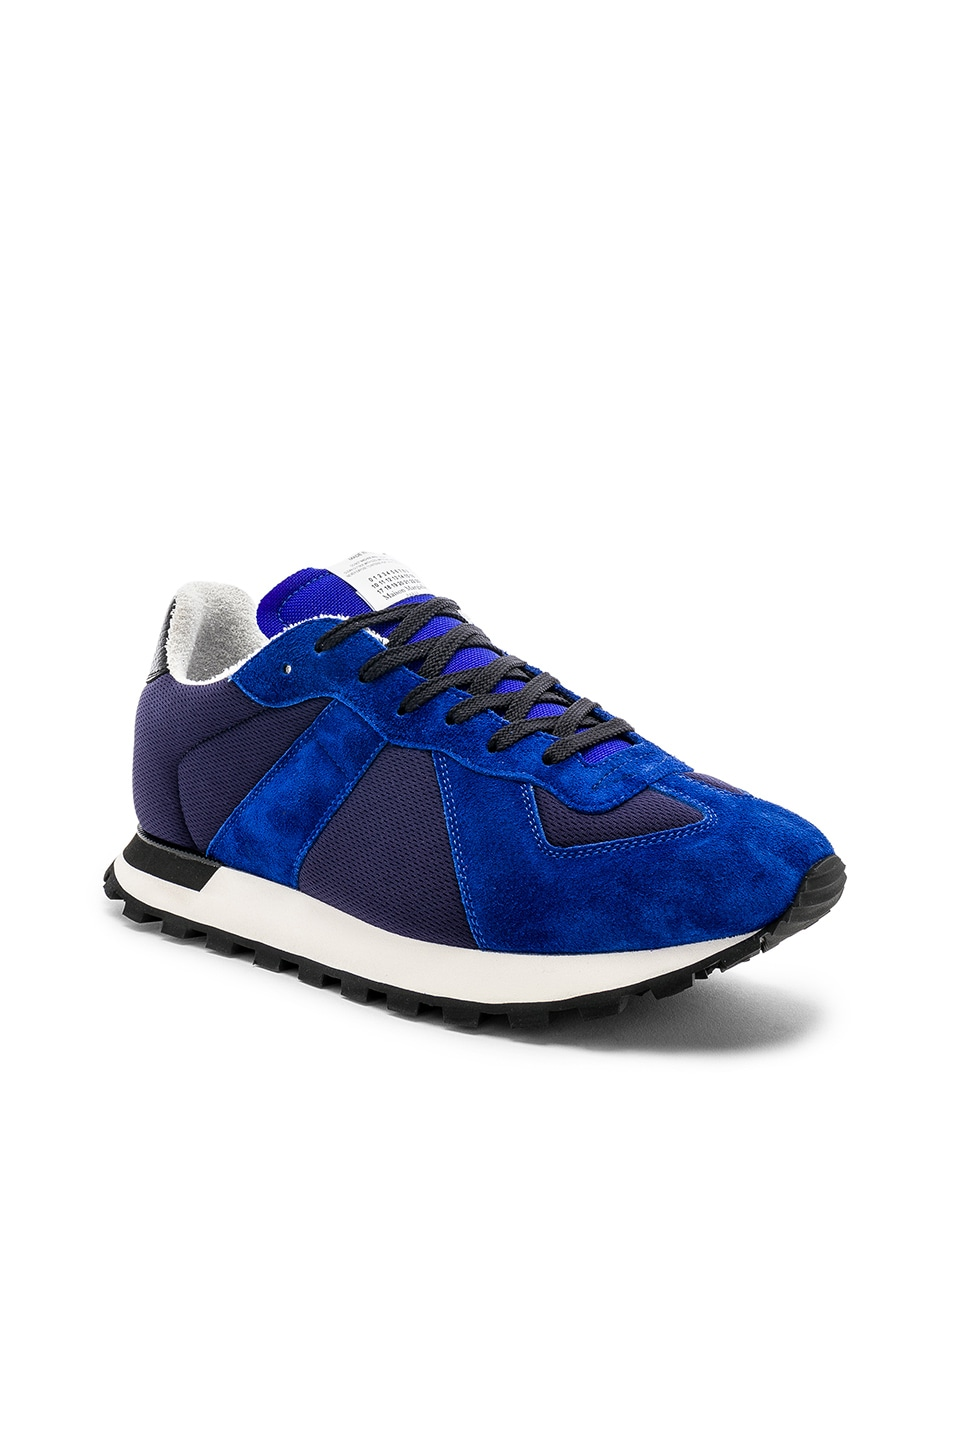 Image 1 of Maison Margiela Replica Runners in Navy & Electric Blue